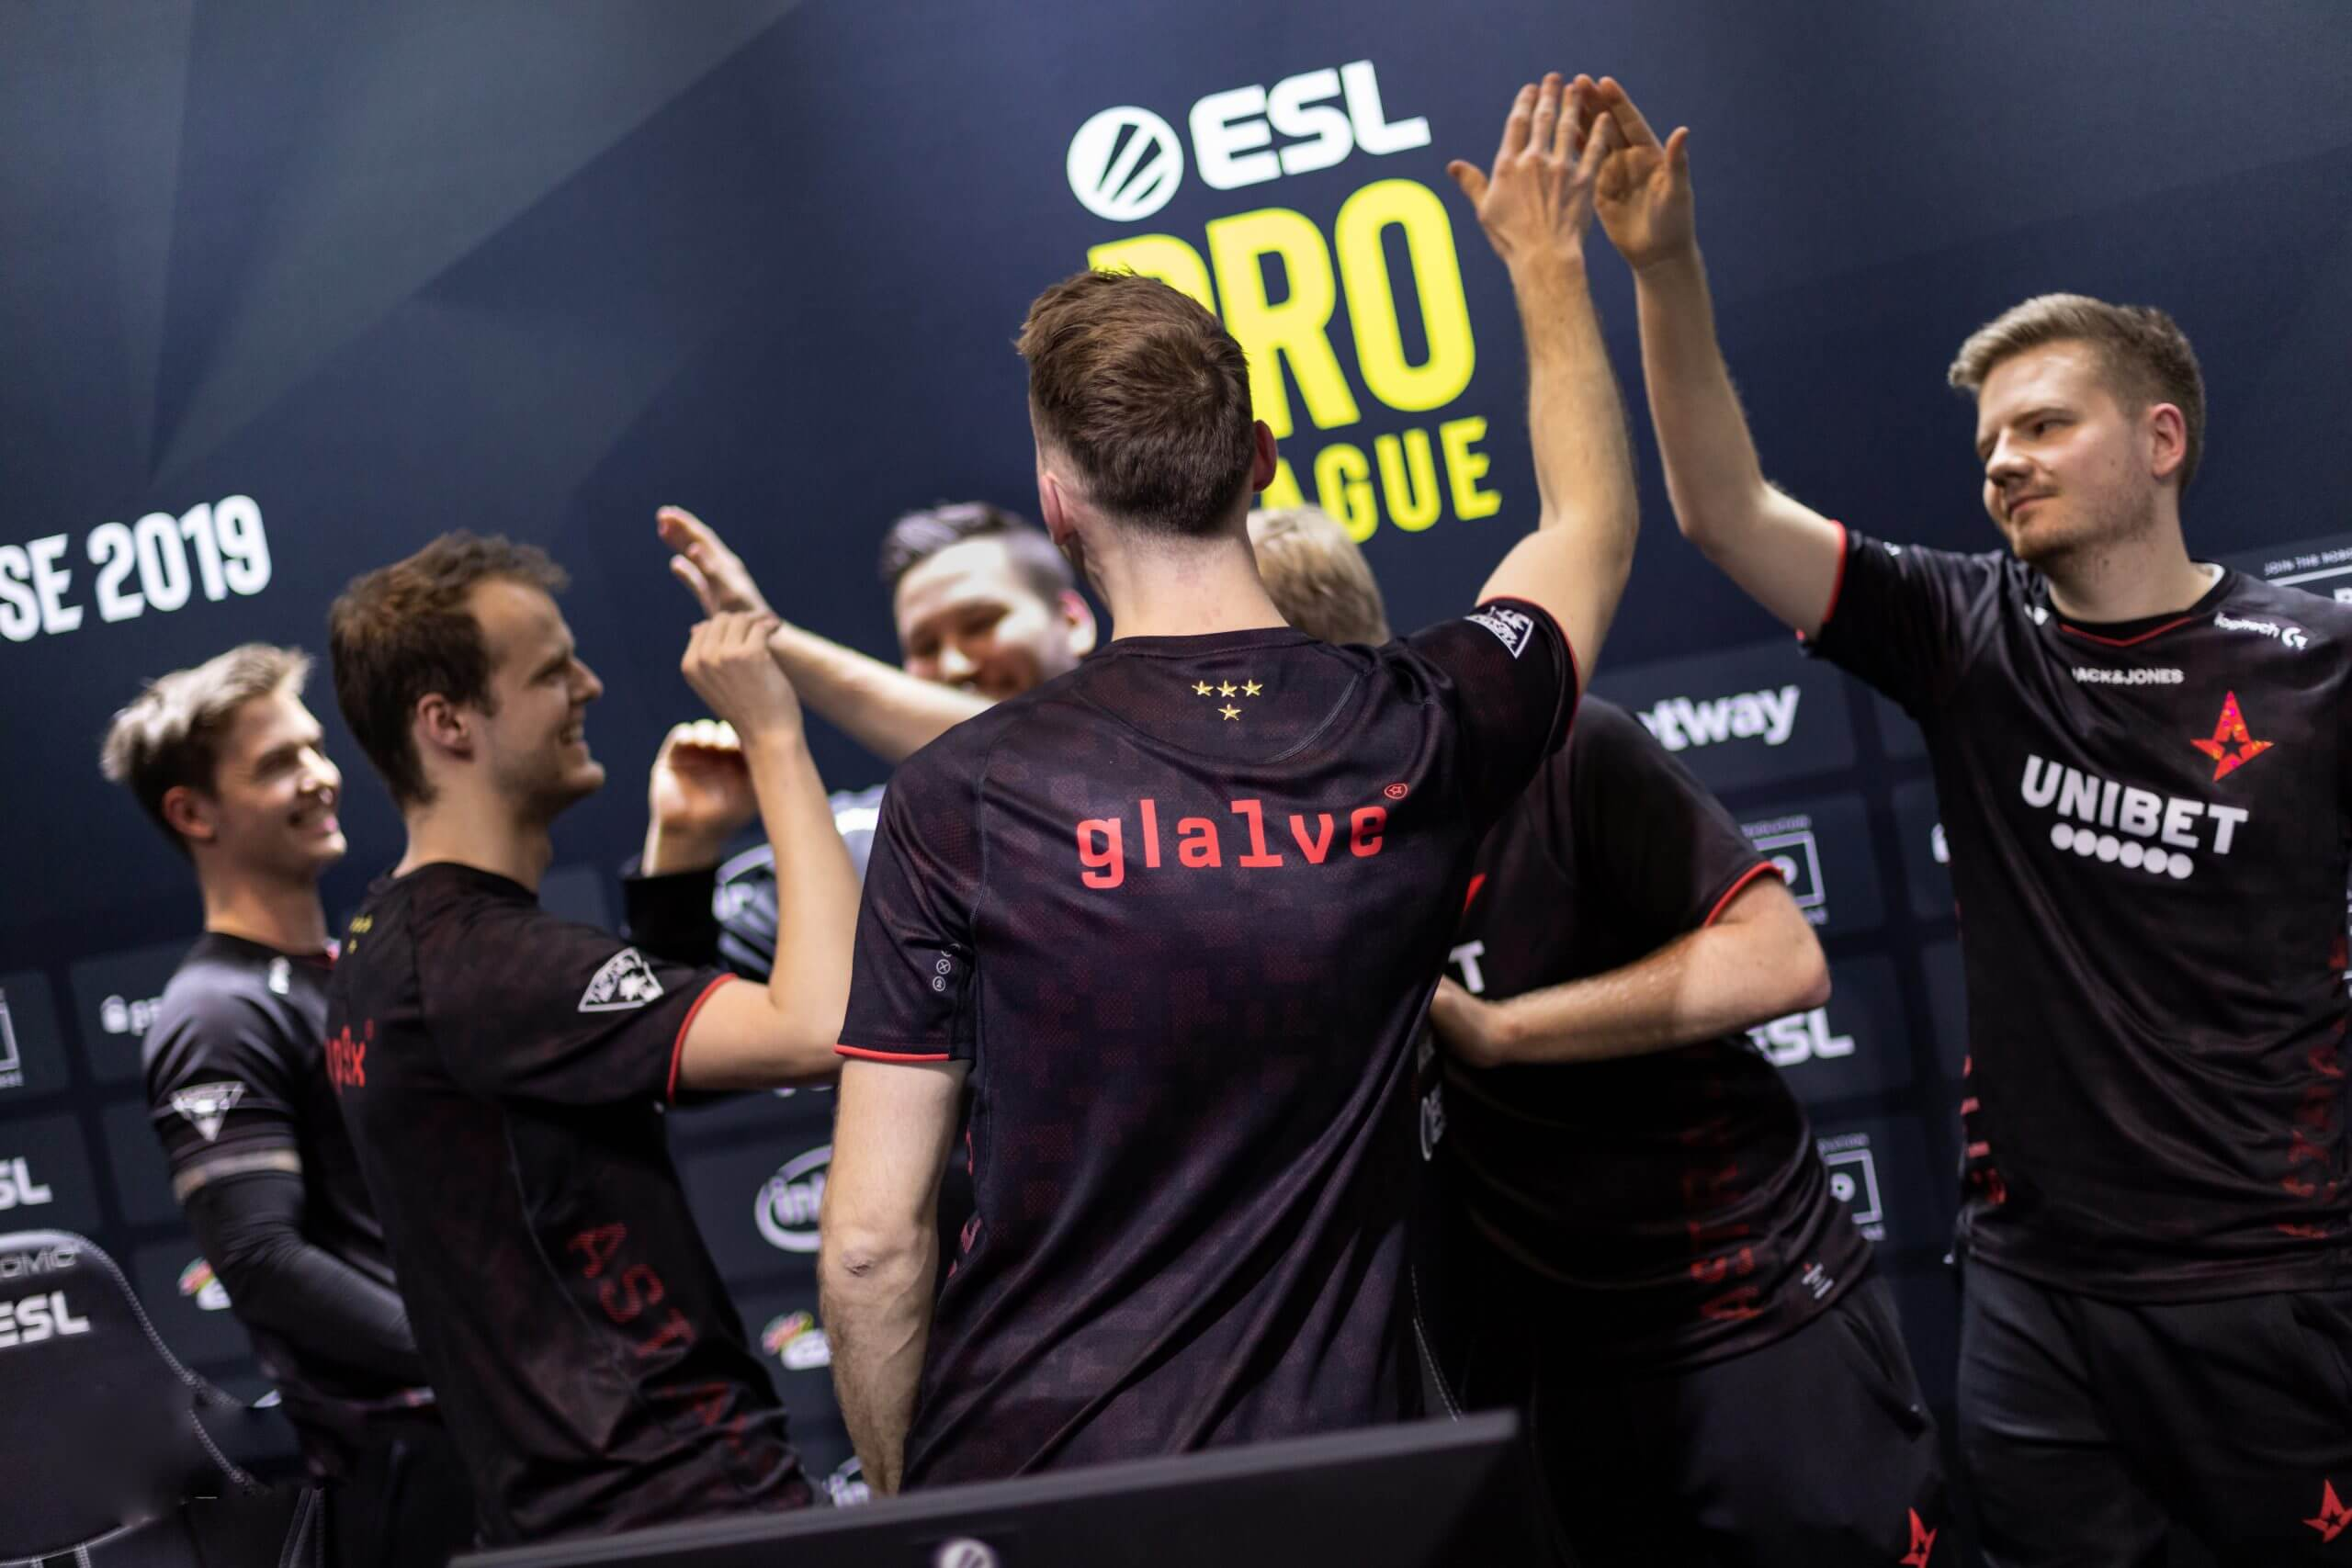 astralis scaled